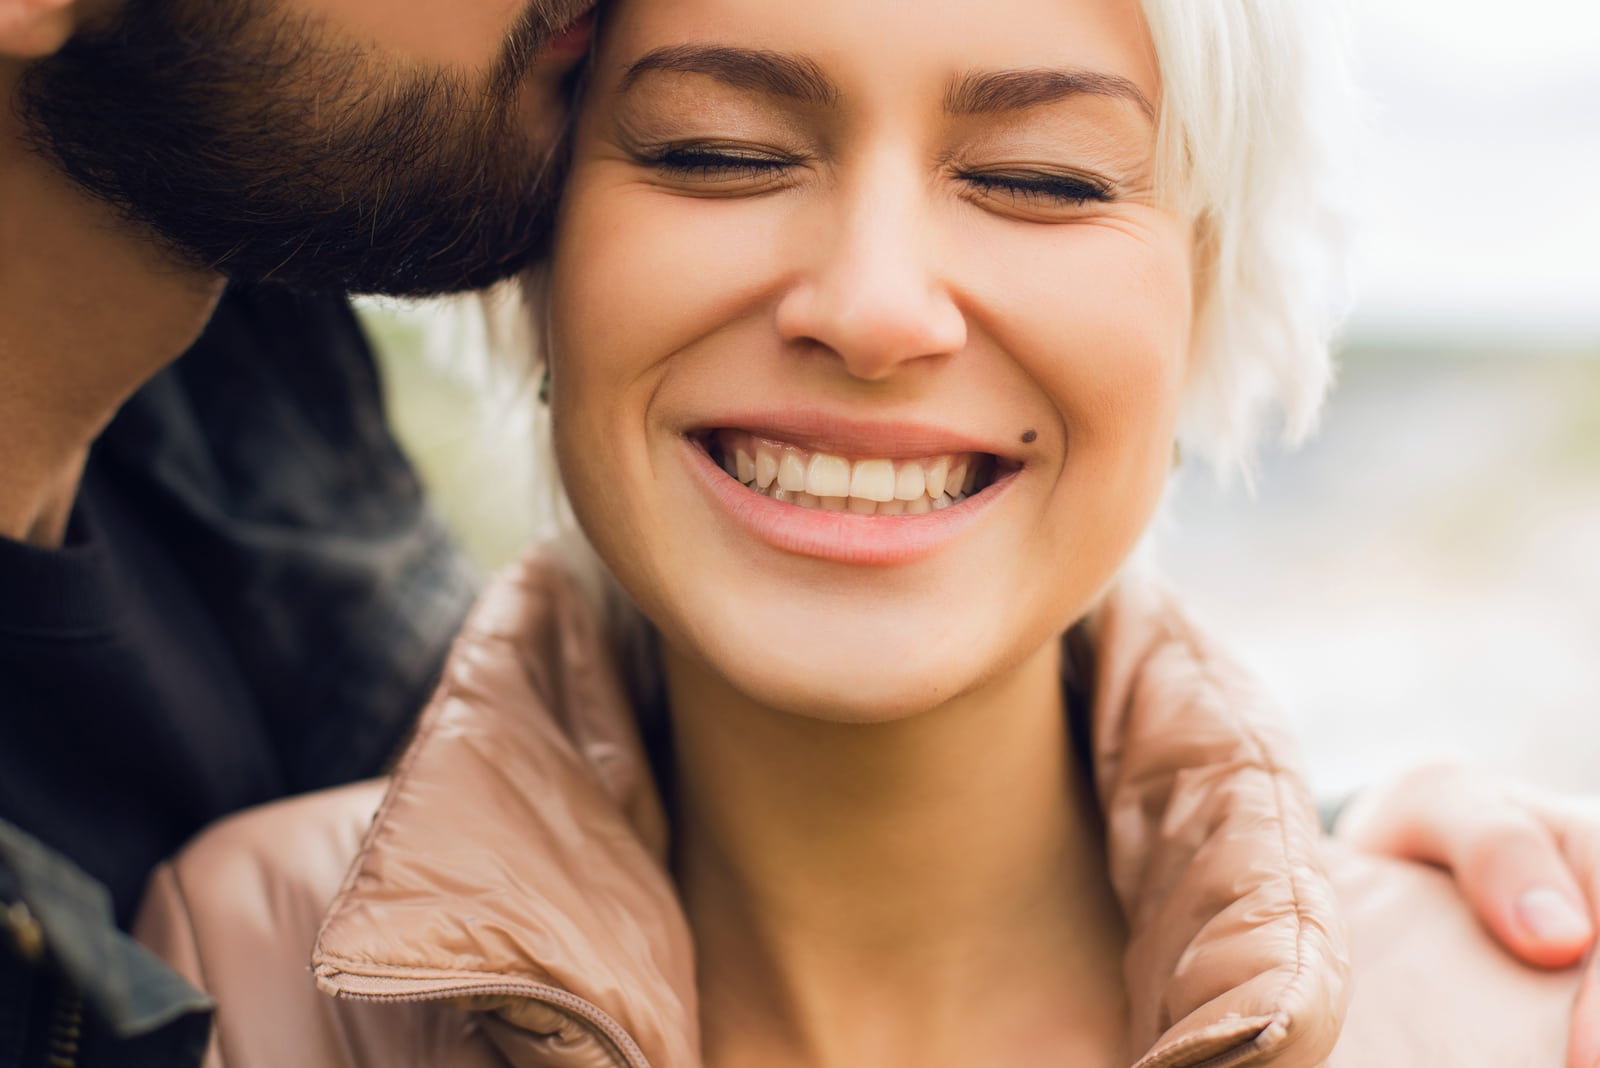 a bearded man kisses a smiling woman on the cheek